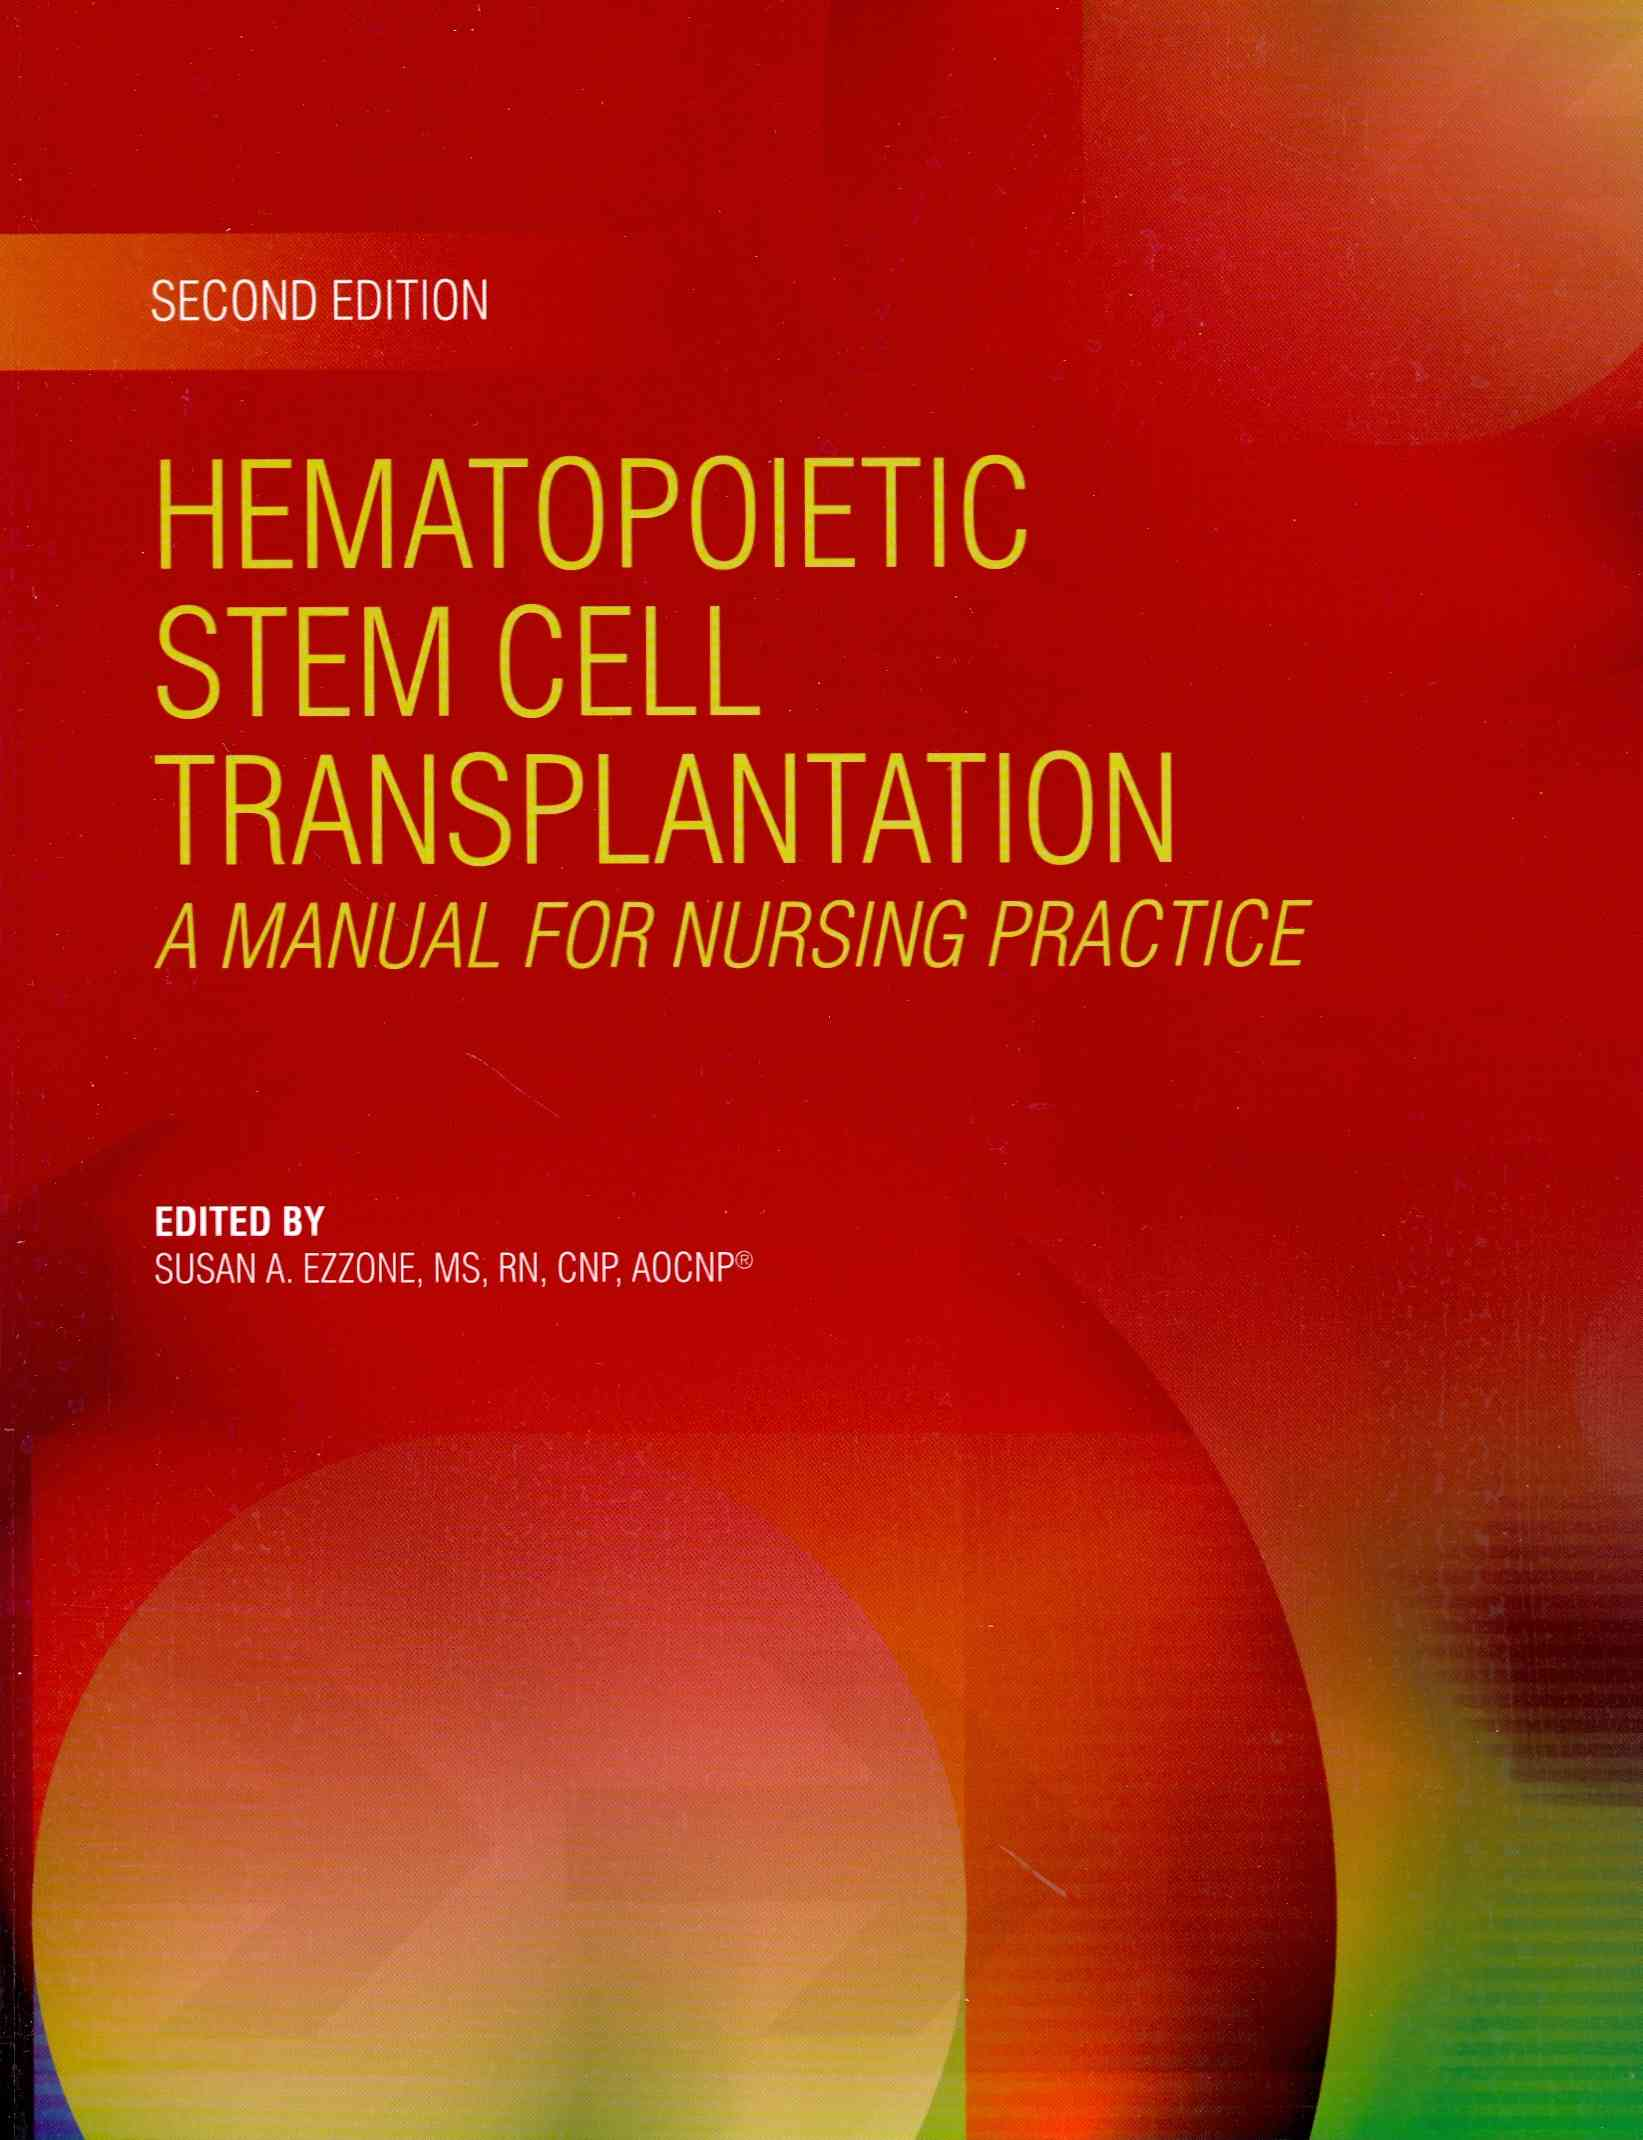 Hematopoietic Stem Cell Transplantation By S. Ezzone (EDT)